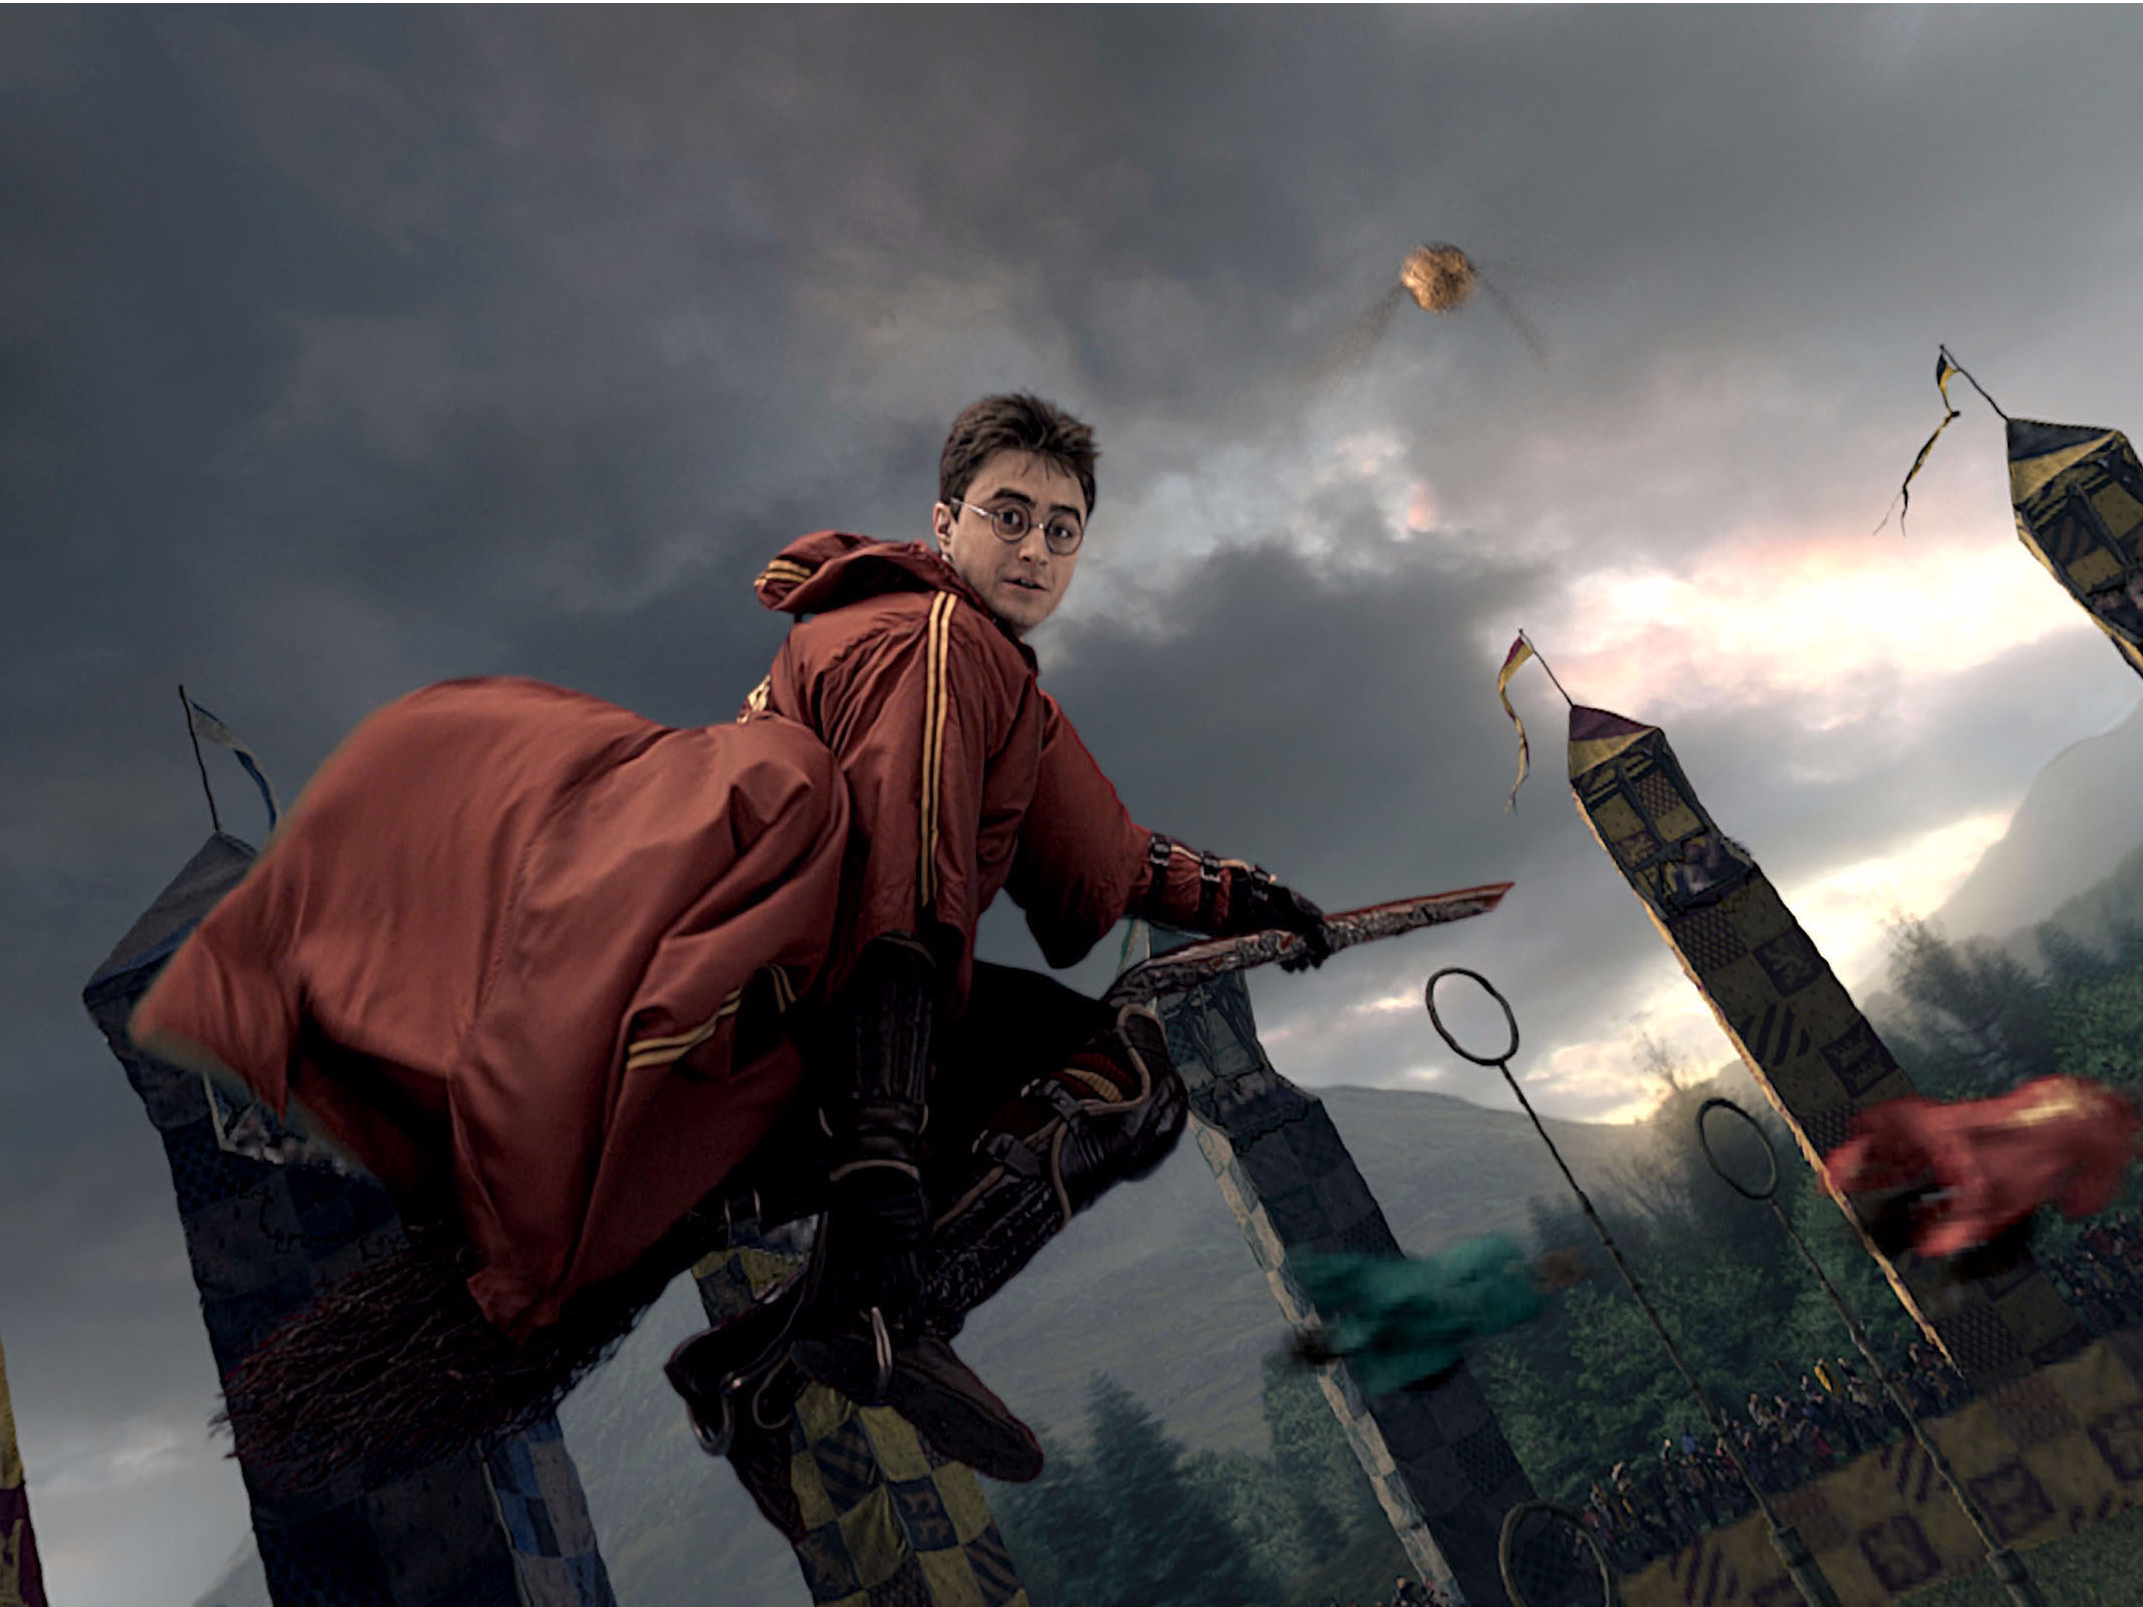 Harry Potter Playing quidditch on a Wizard broom // Photo: thisisinsider.com